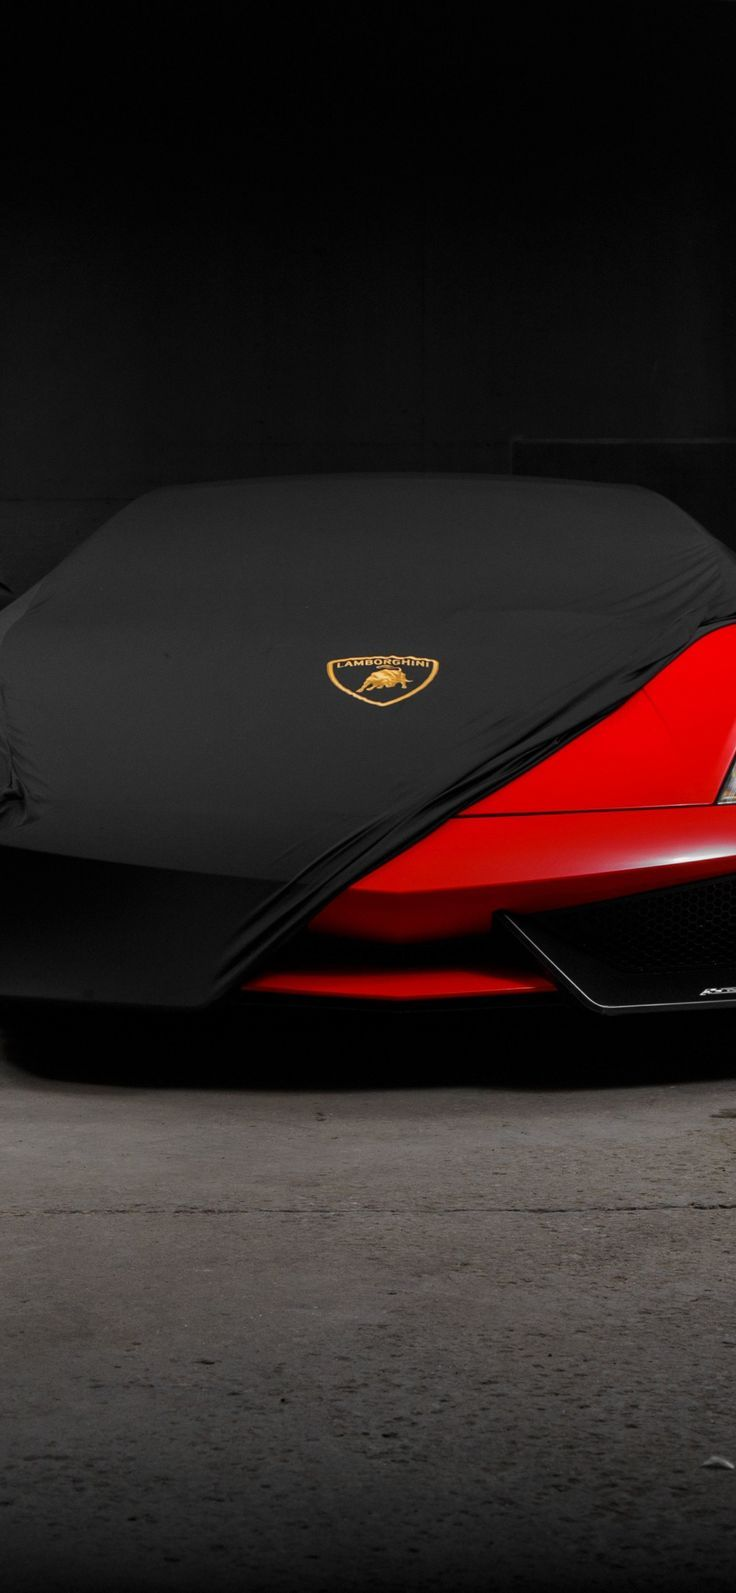 Pin By Des Voitures On Masons Pins In 2020 Lamborghini Cars Red Lamborghini Car Wallpapers